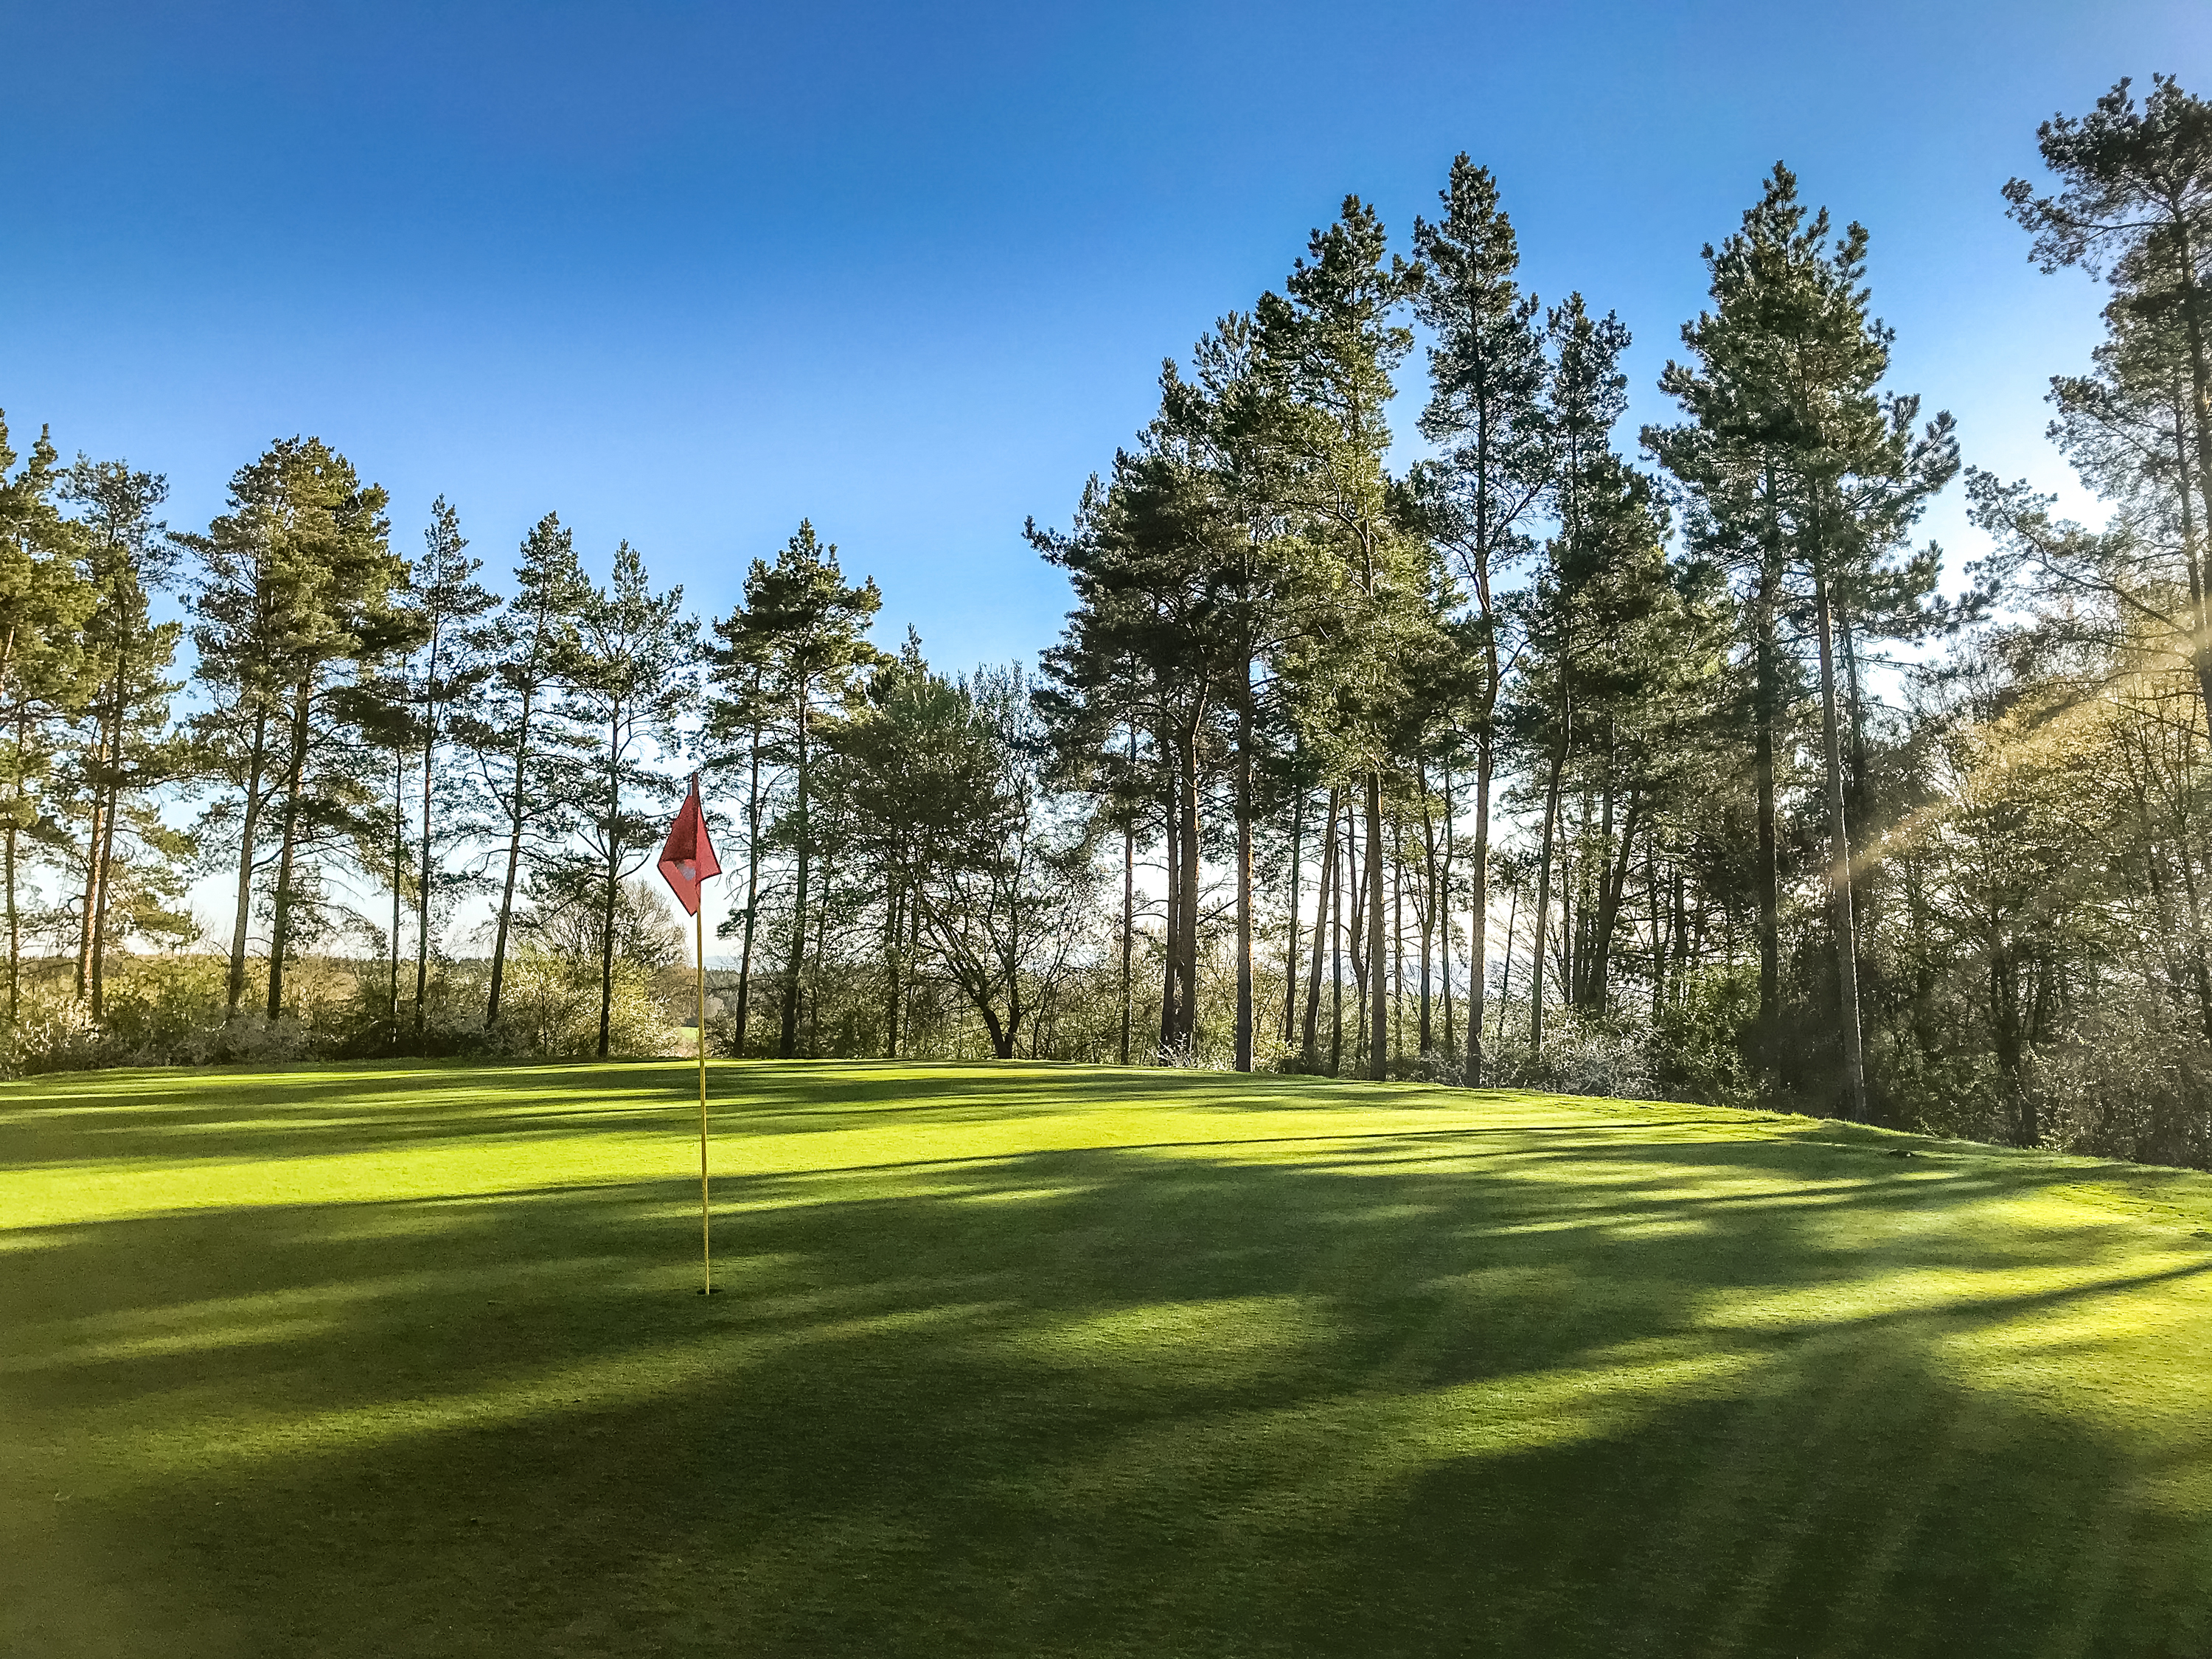 Golfspielen in Bad Münstereifel, Hotel Golf Arrangements